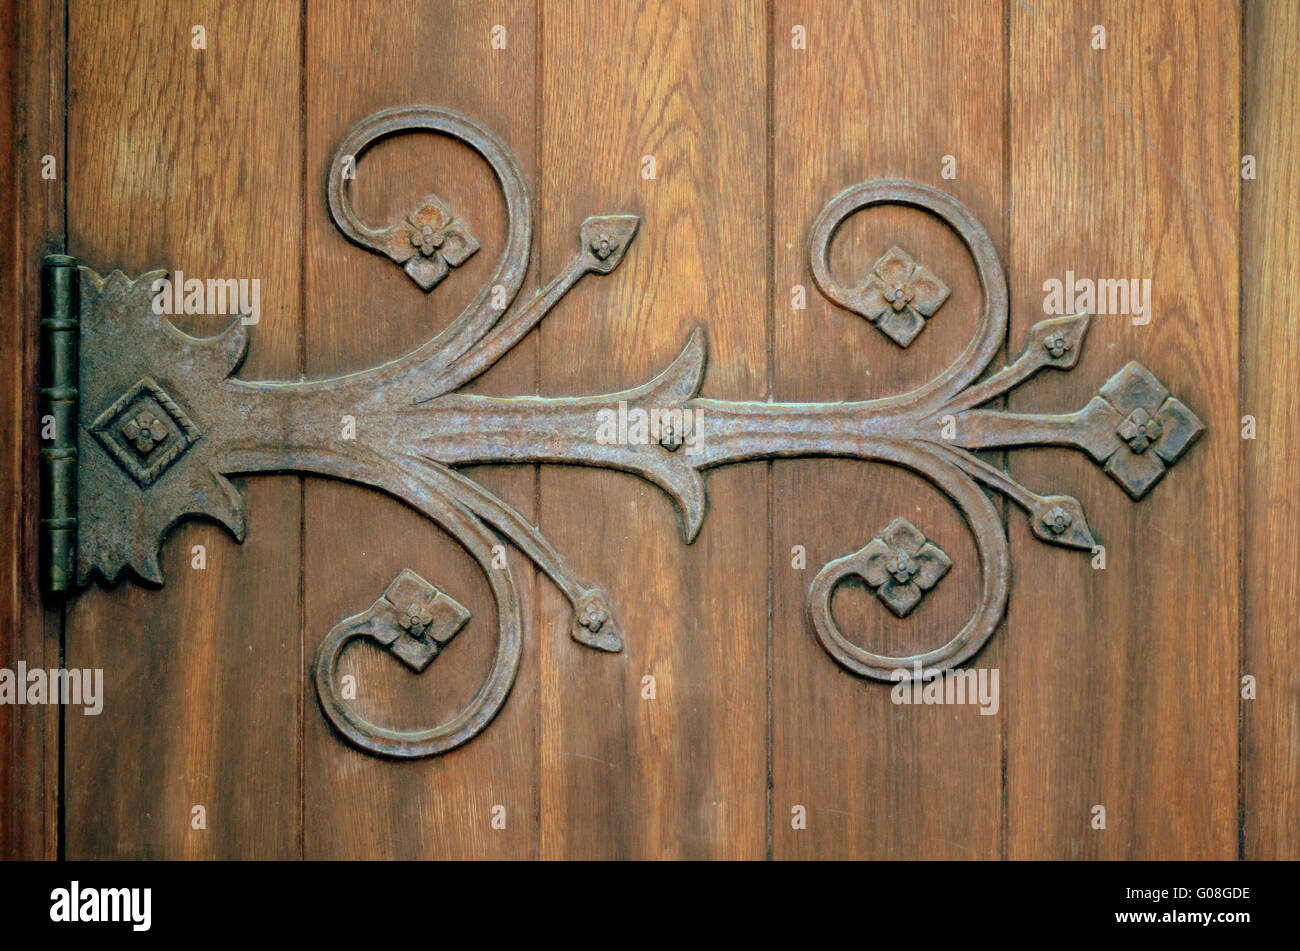 Close-up Of An Ornamental Iron Hinge On An Old Wooden Door - Stock Image